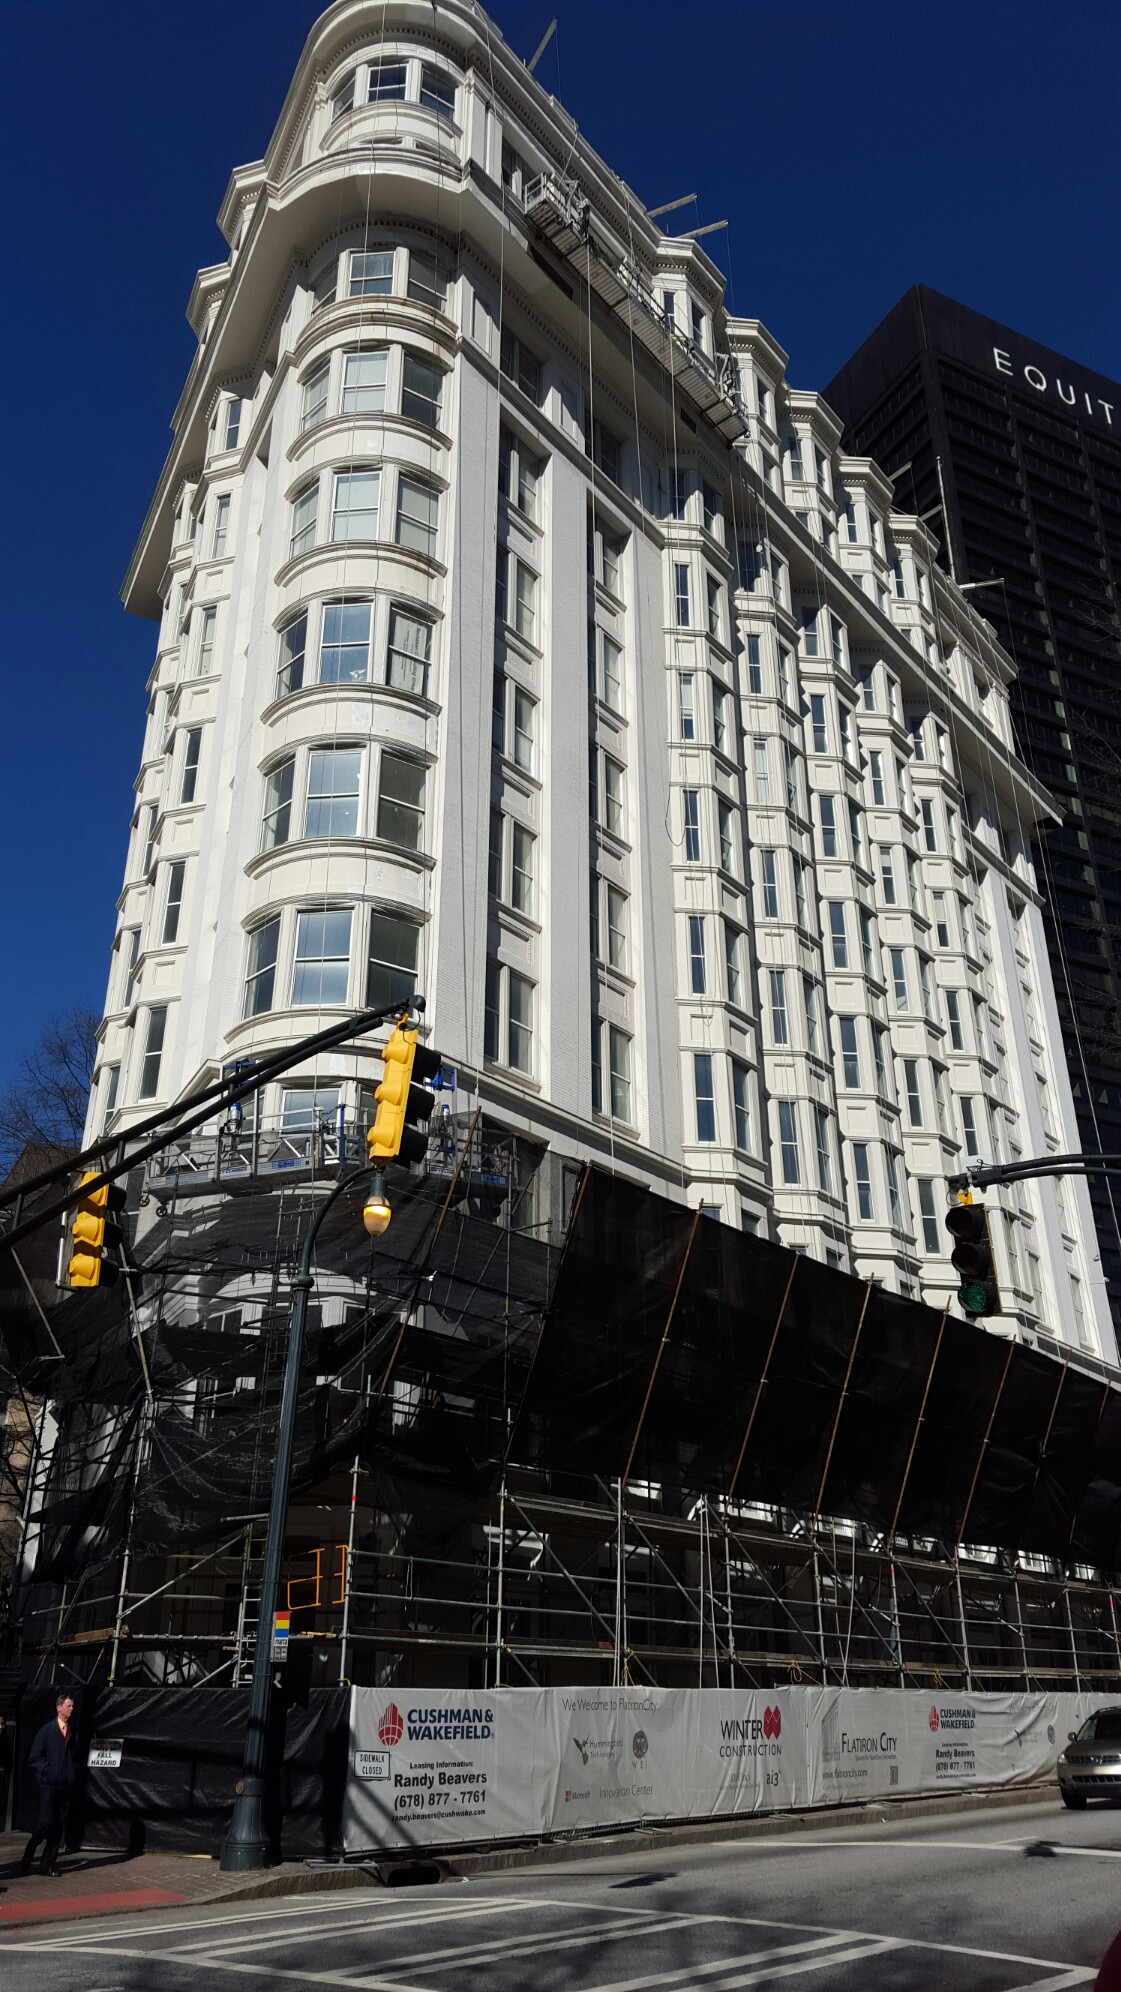 Figo Pasta will be a part of the Flatiron building after its $12 million renovation.